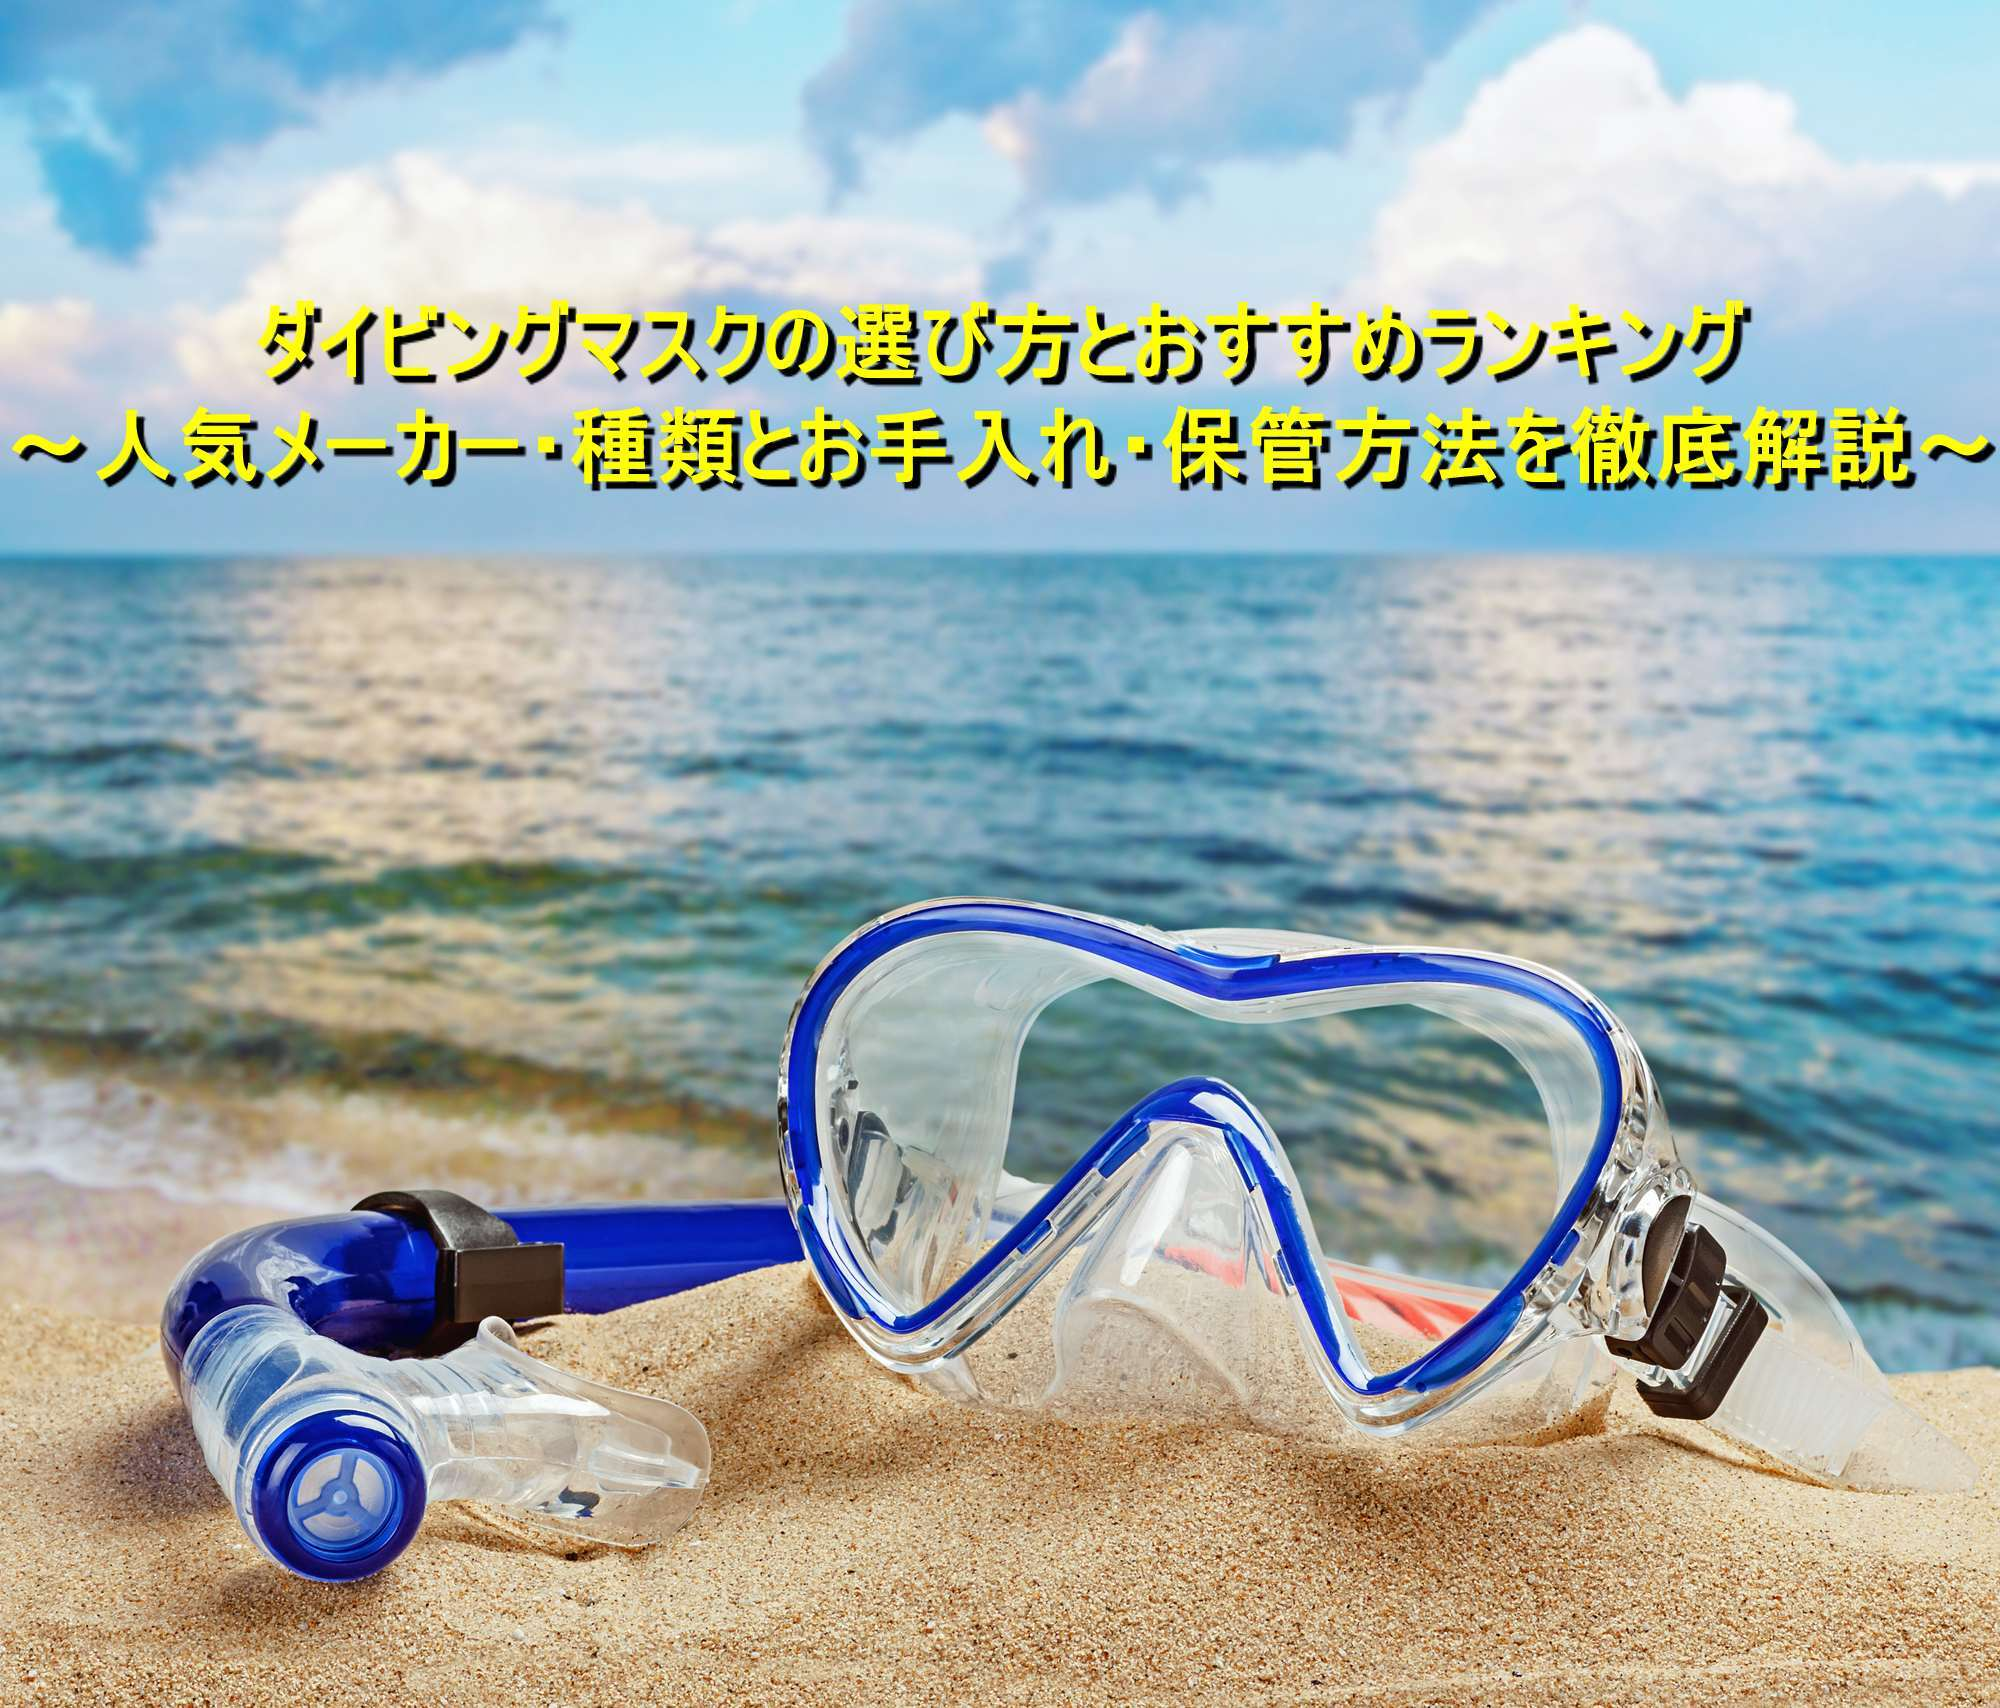 snorkel and scuba mask